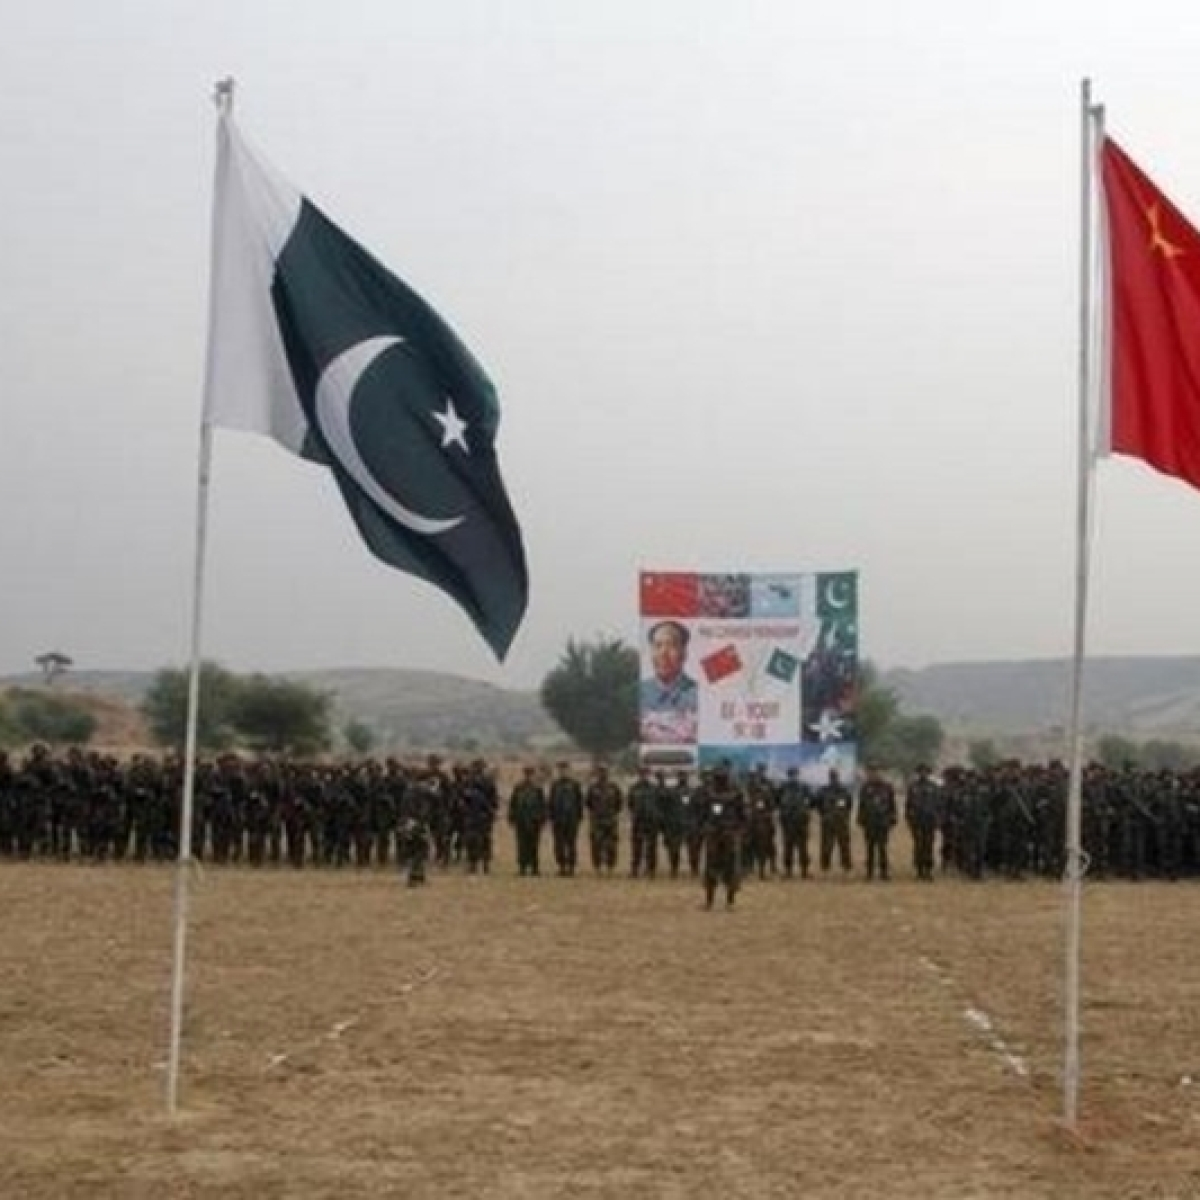 China using Pakistan for military logistics facilities: US Defence report